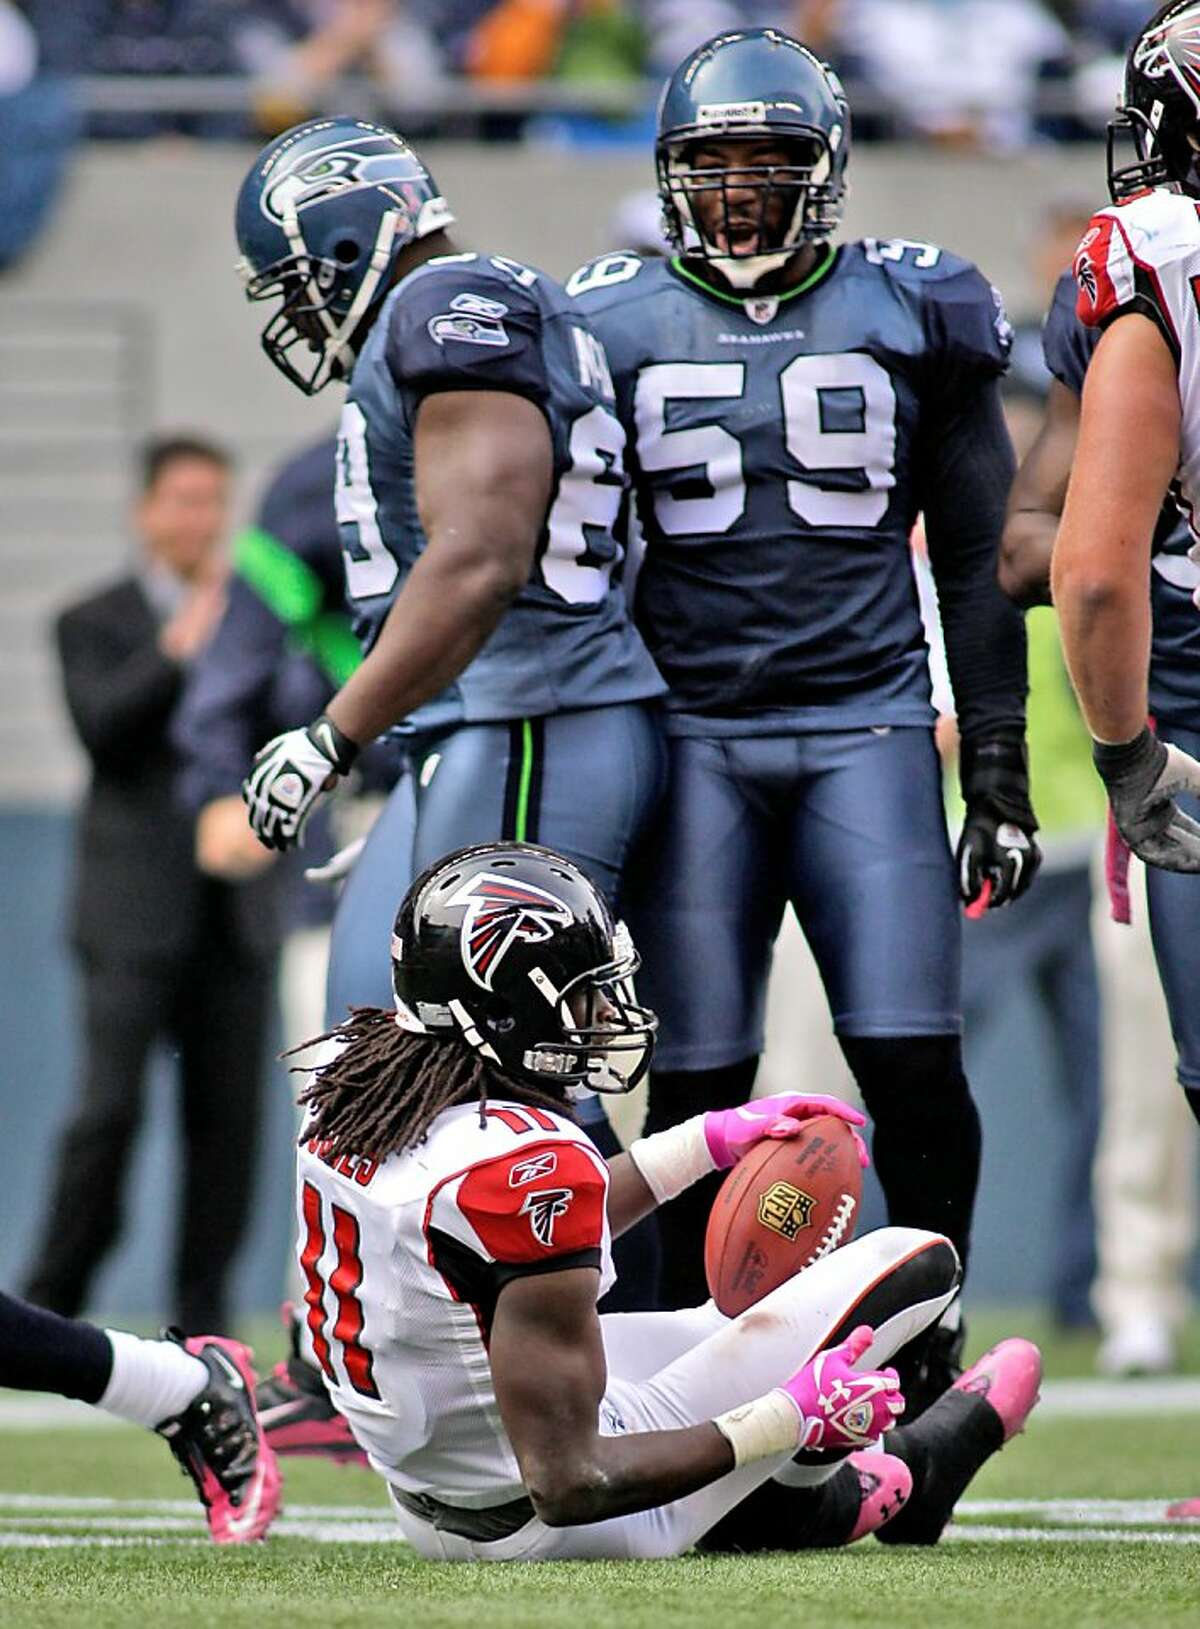 Seattle Seahawks Aaron Curry (59) watch Atlanta Falcons Julio Jones after Jones was tackled in the second half of a NFL football game, Sunday, Oct. 2, 2011, in Seattle. (AP Photo/Ted S. Warren)